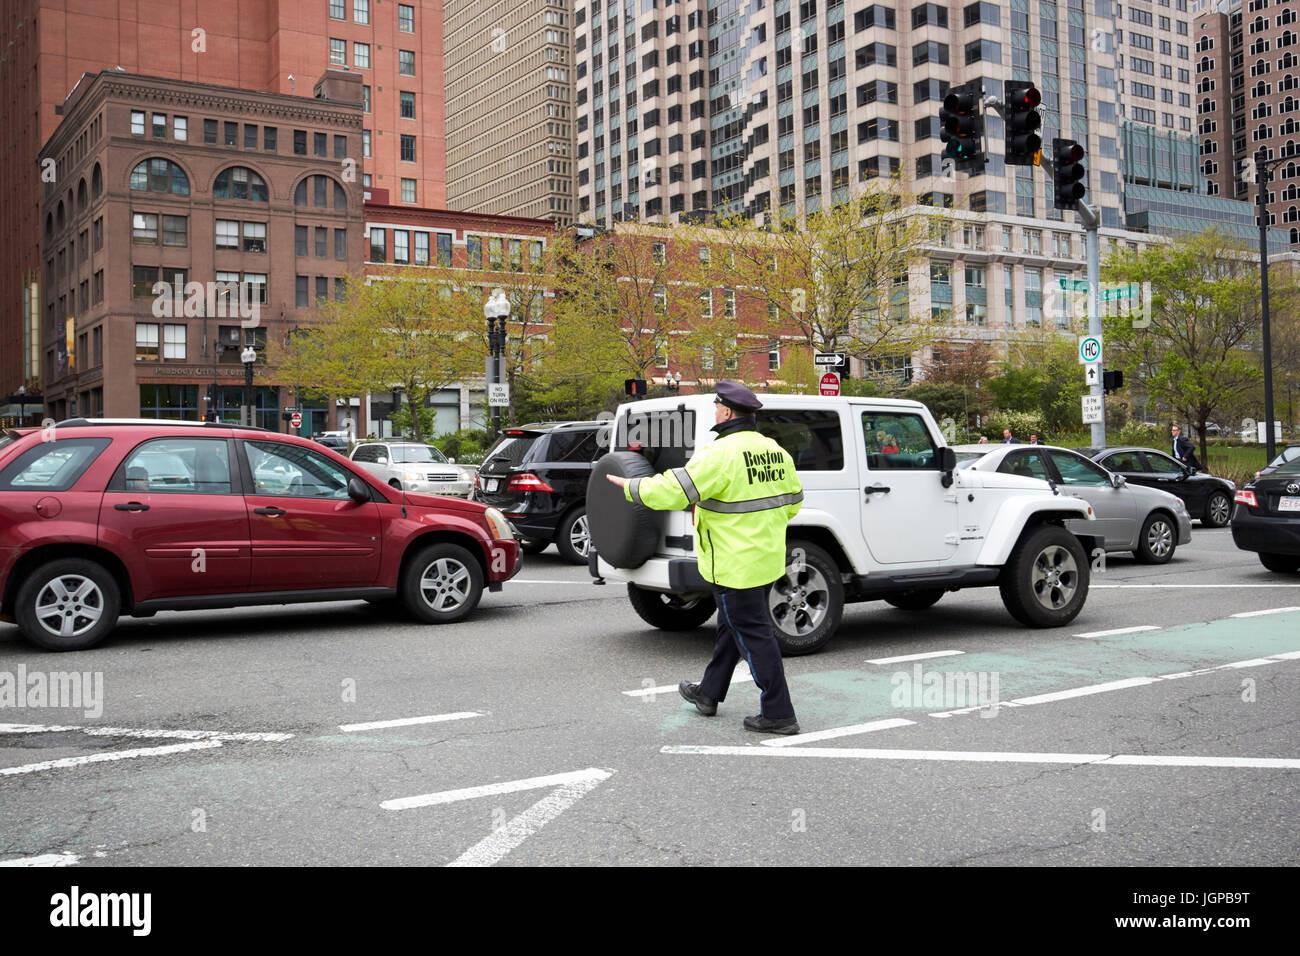 boston police officer directing traffic downtown at busy congress street and atlantic avenue junction Boston USA - Stock Image